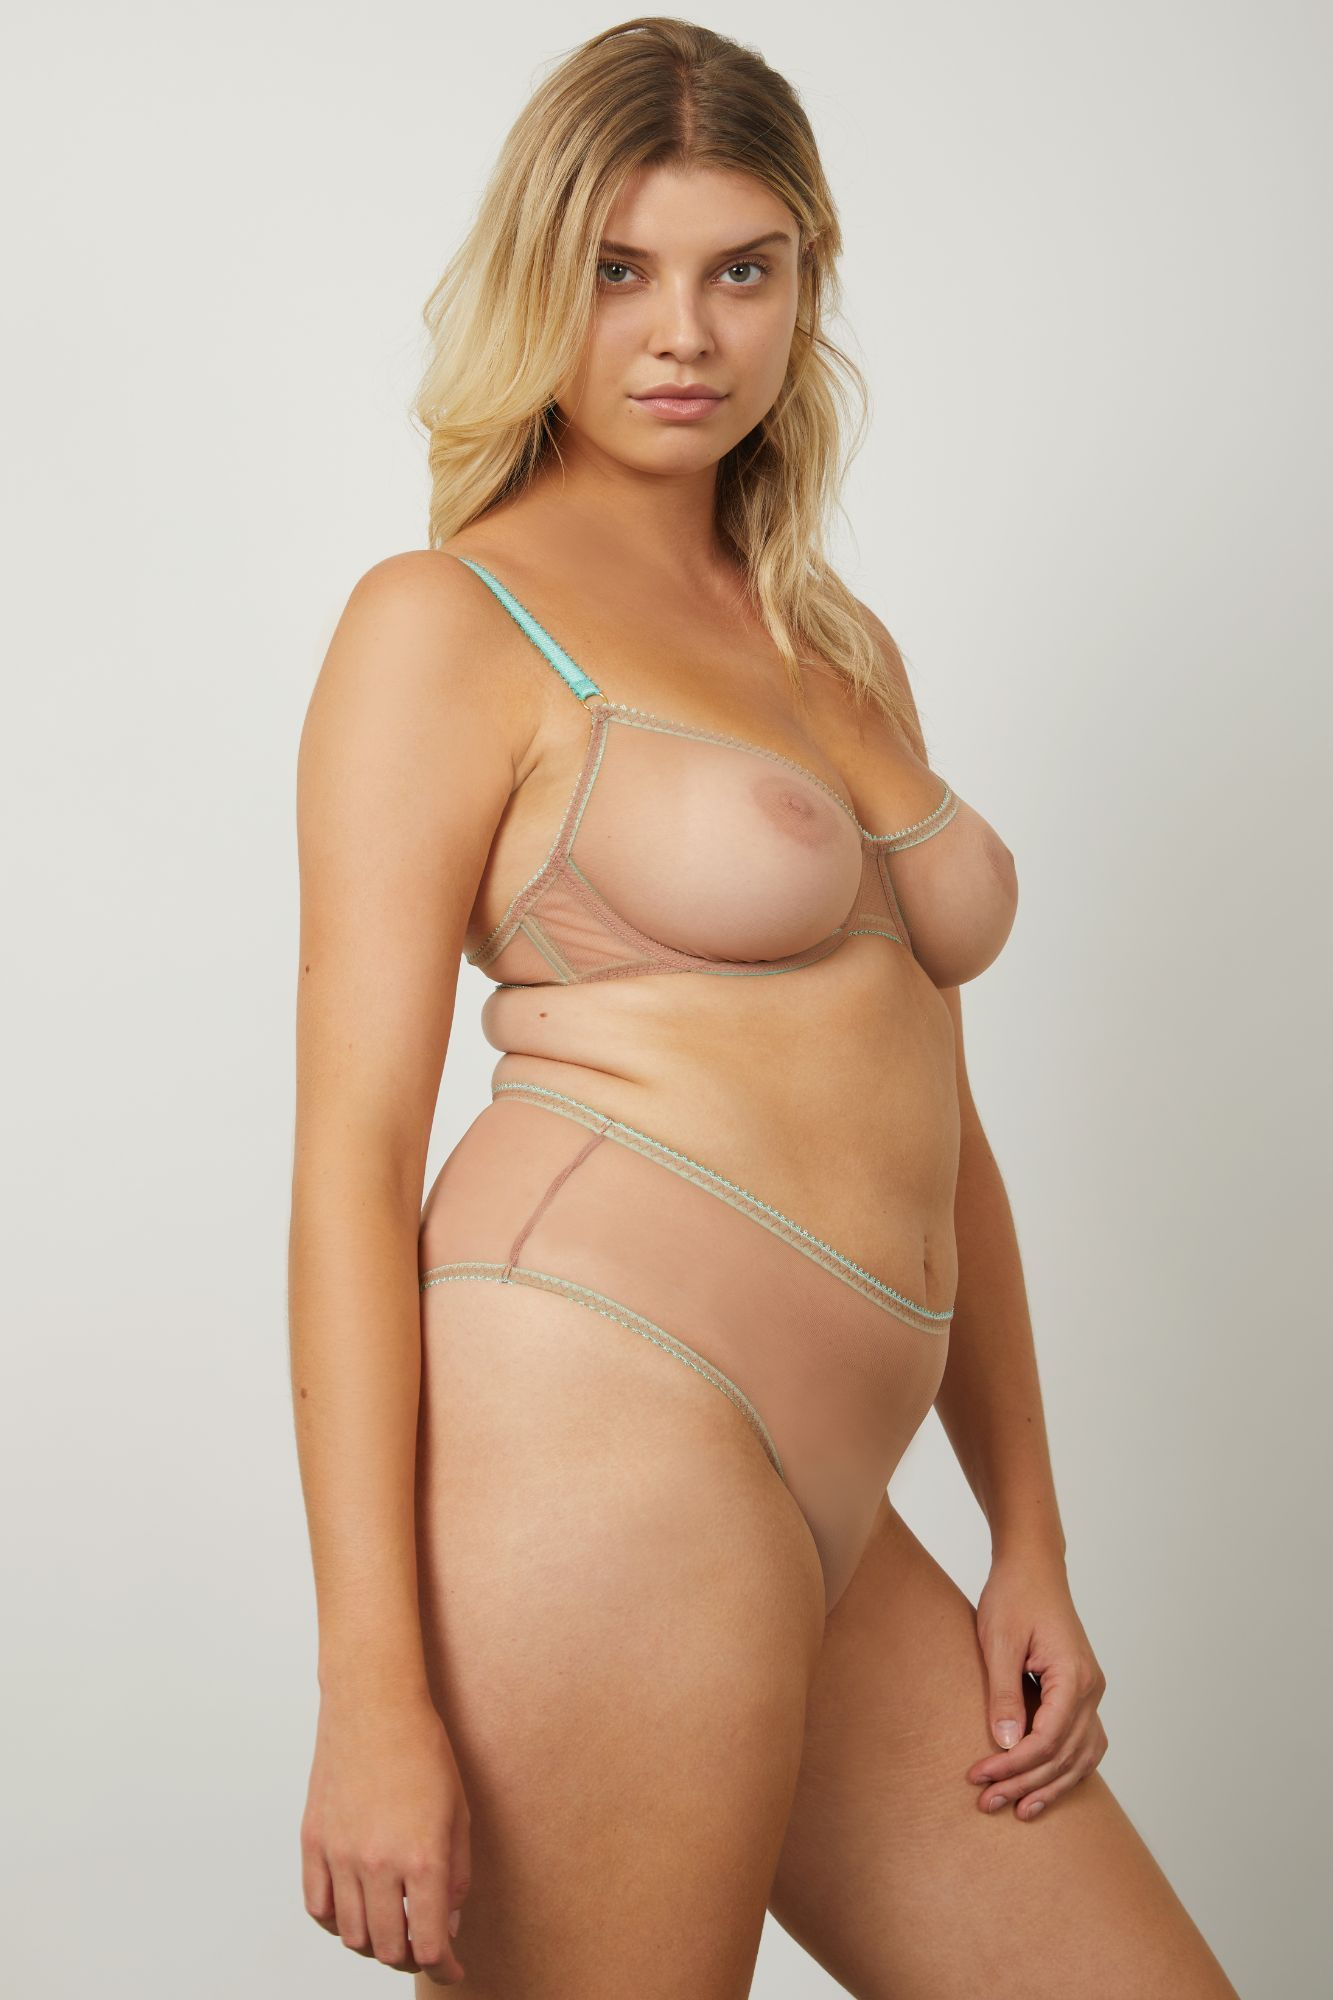 model:Eleanor is wearing a 34DD